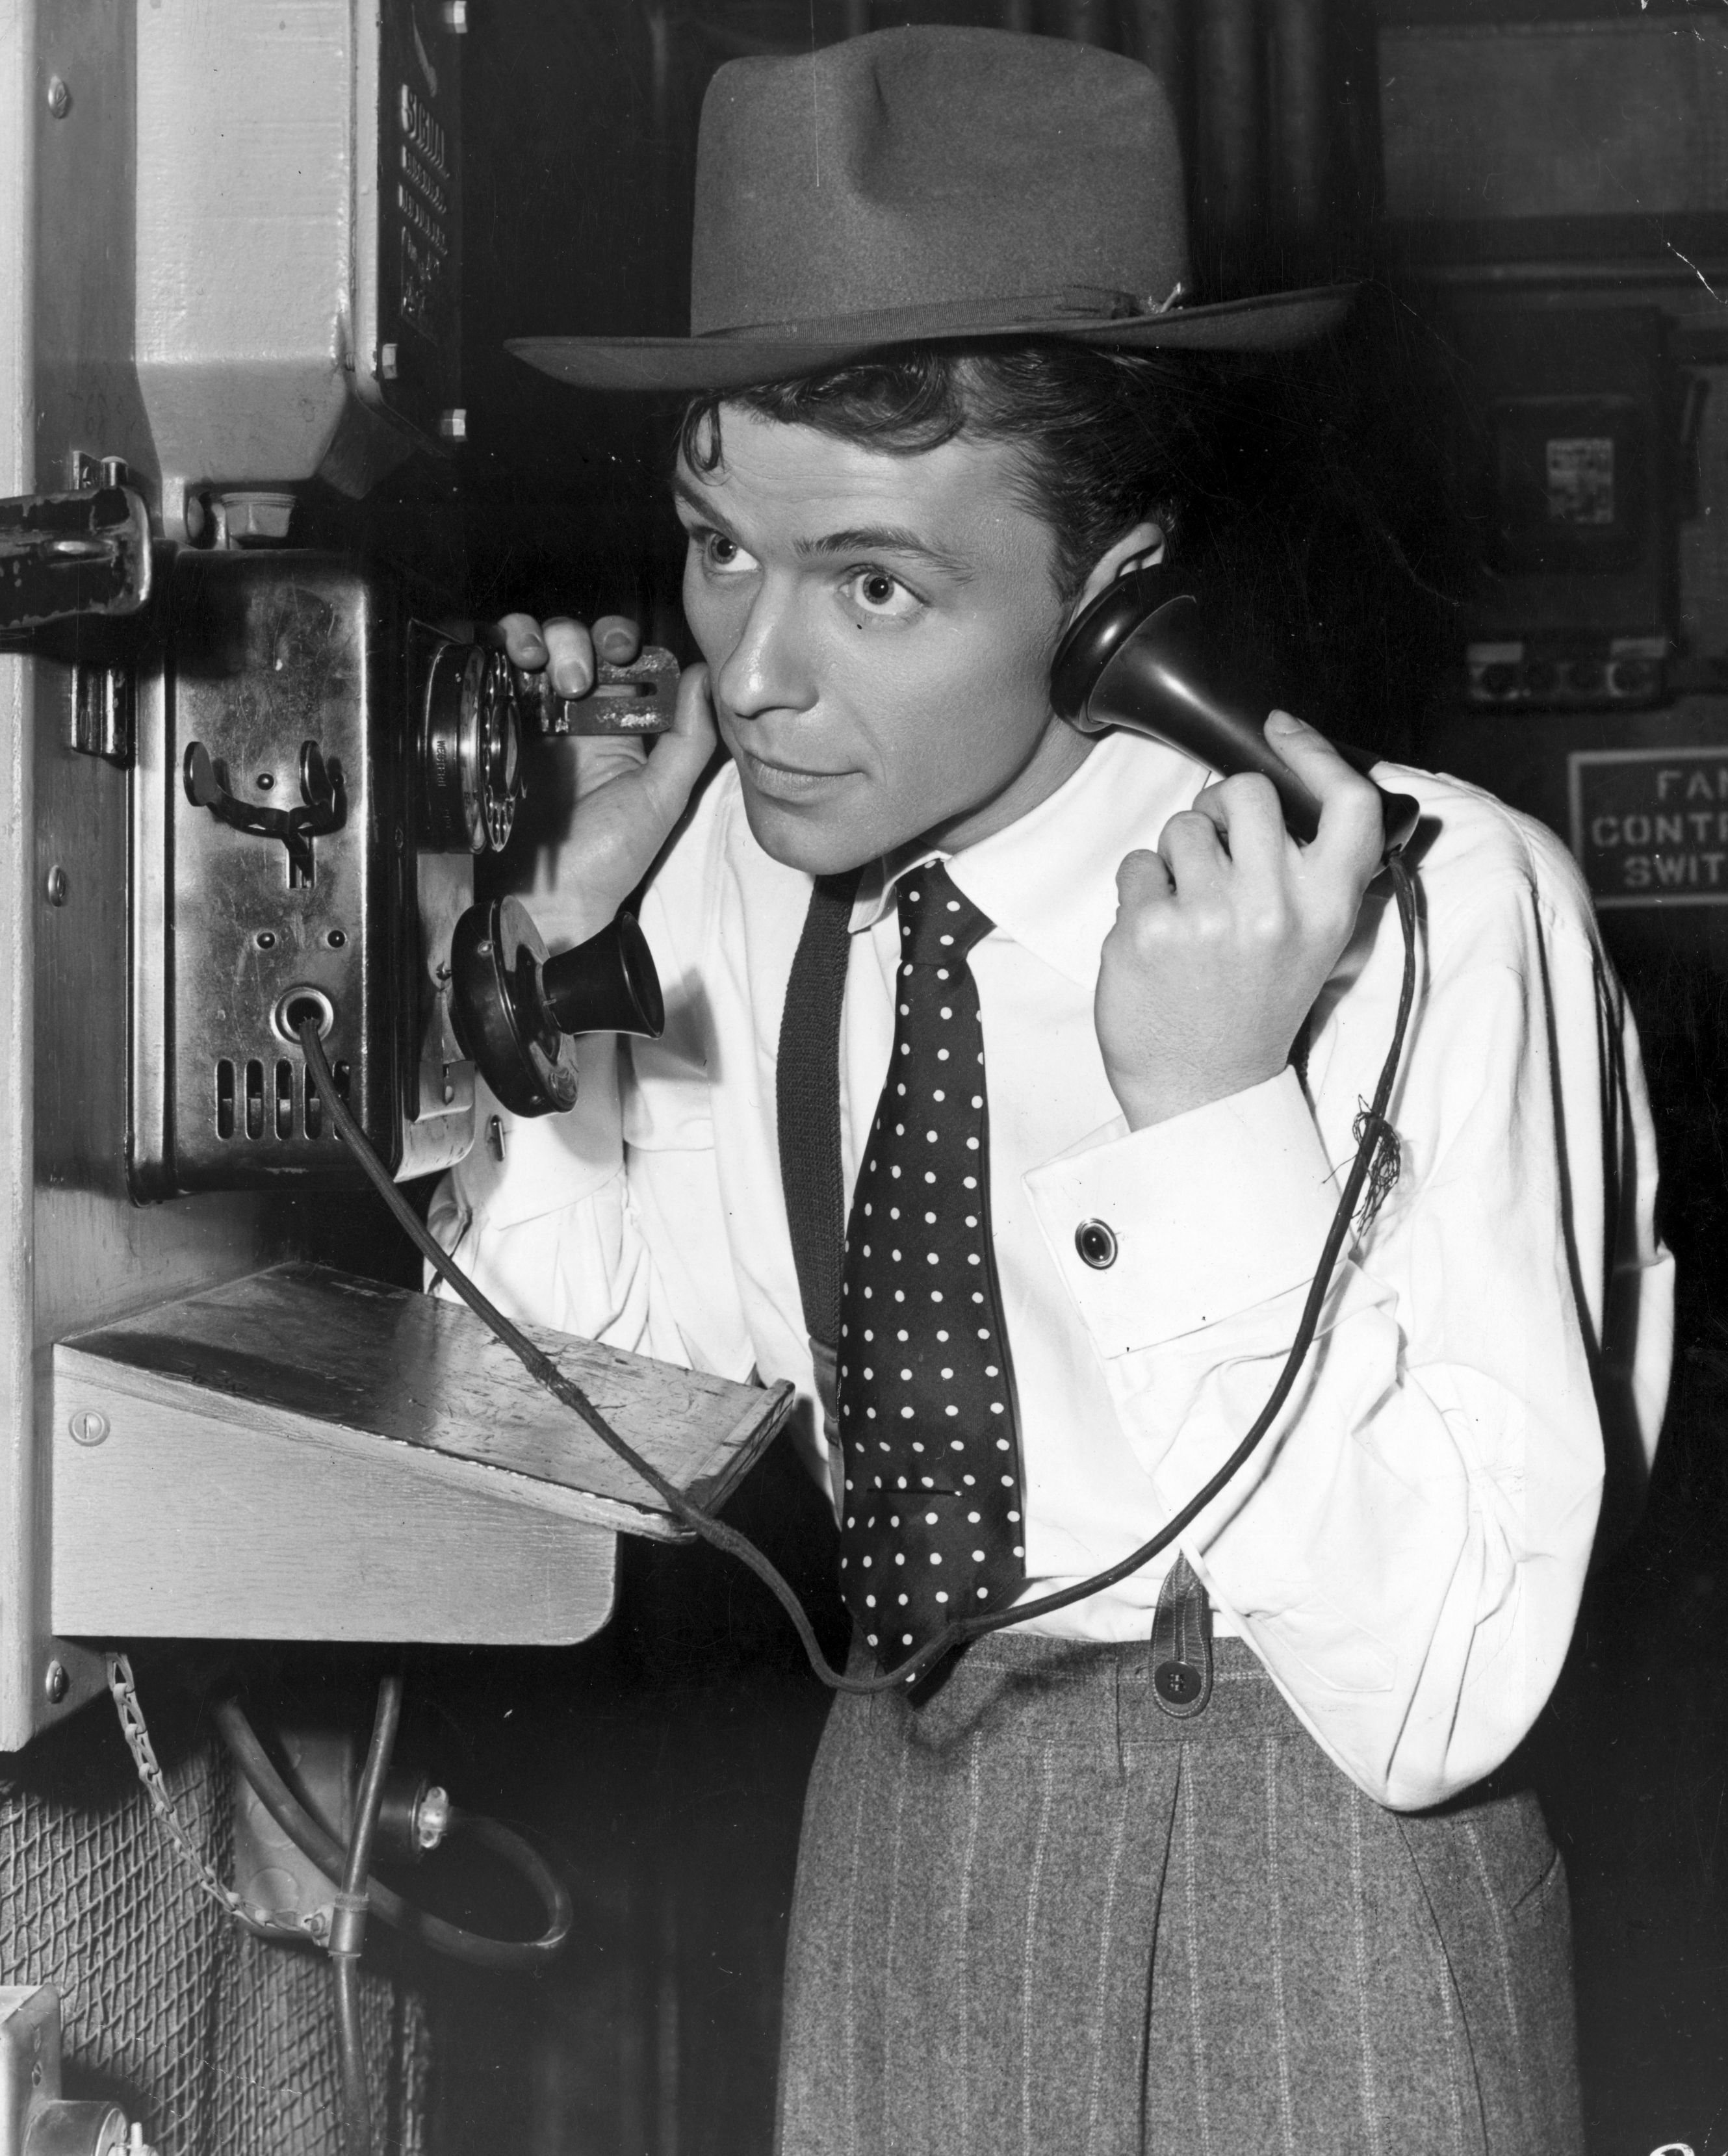 circa 1940: A young Frank Sinatra making a telephone call on the set of the film 'Step Lively'. (Photo by Hulton Archive/Getty Images)